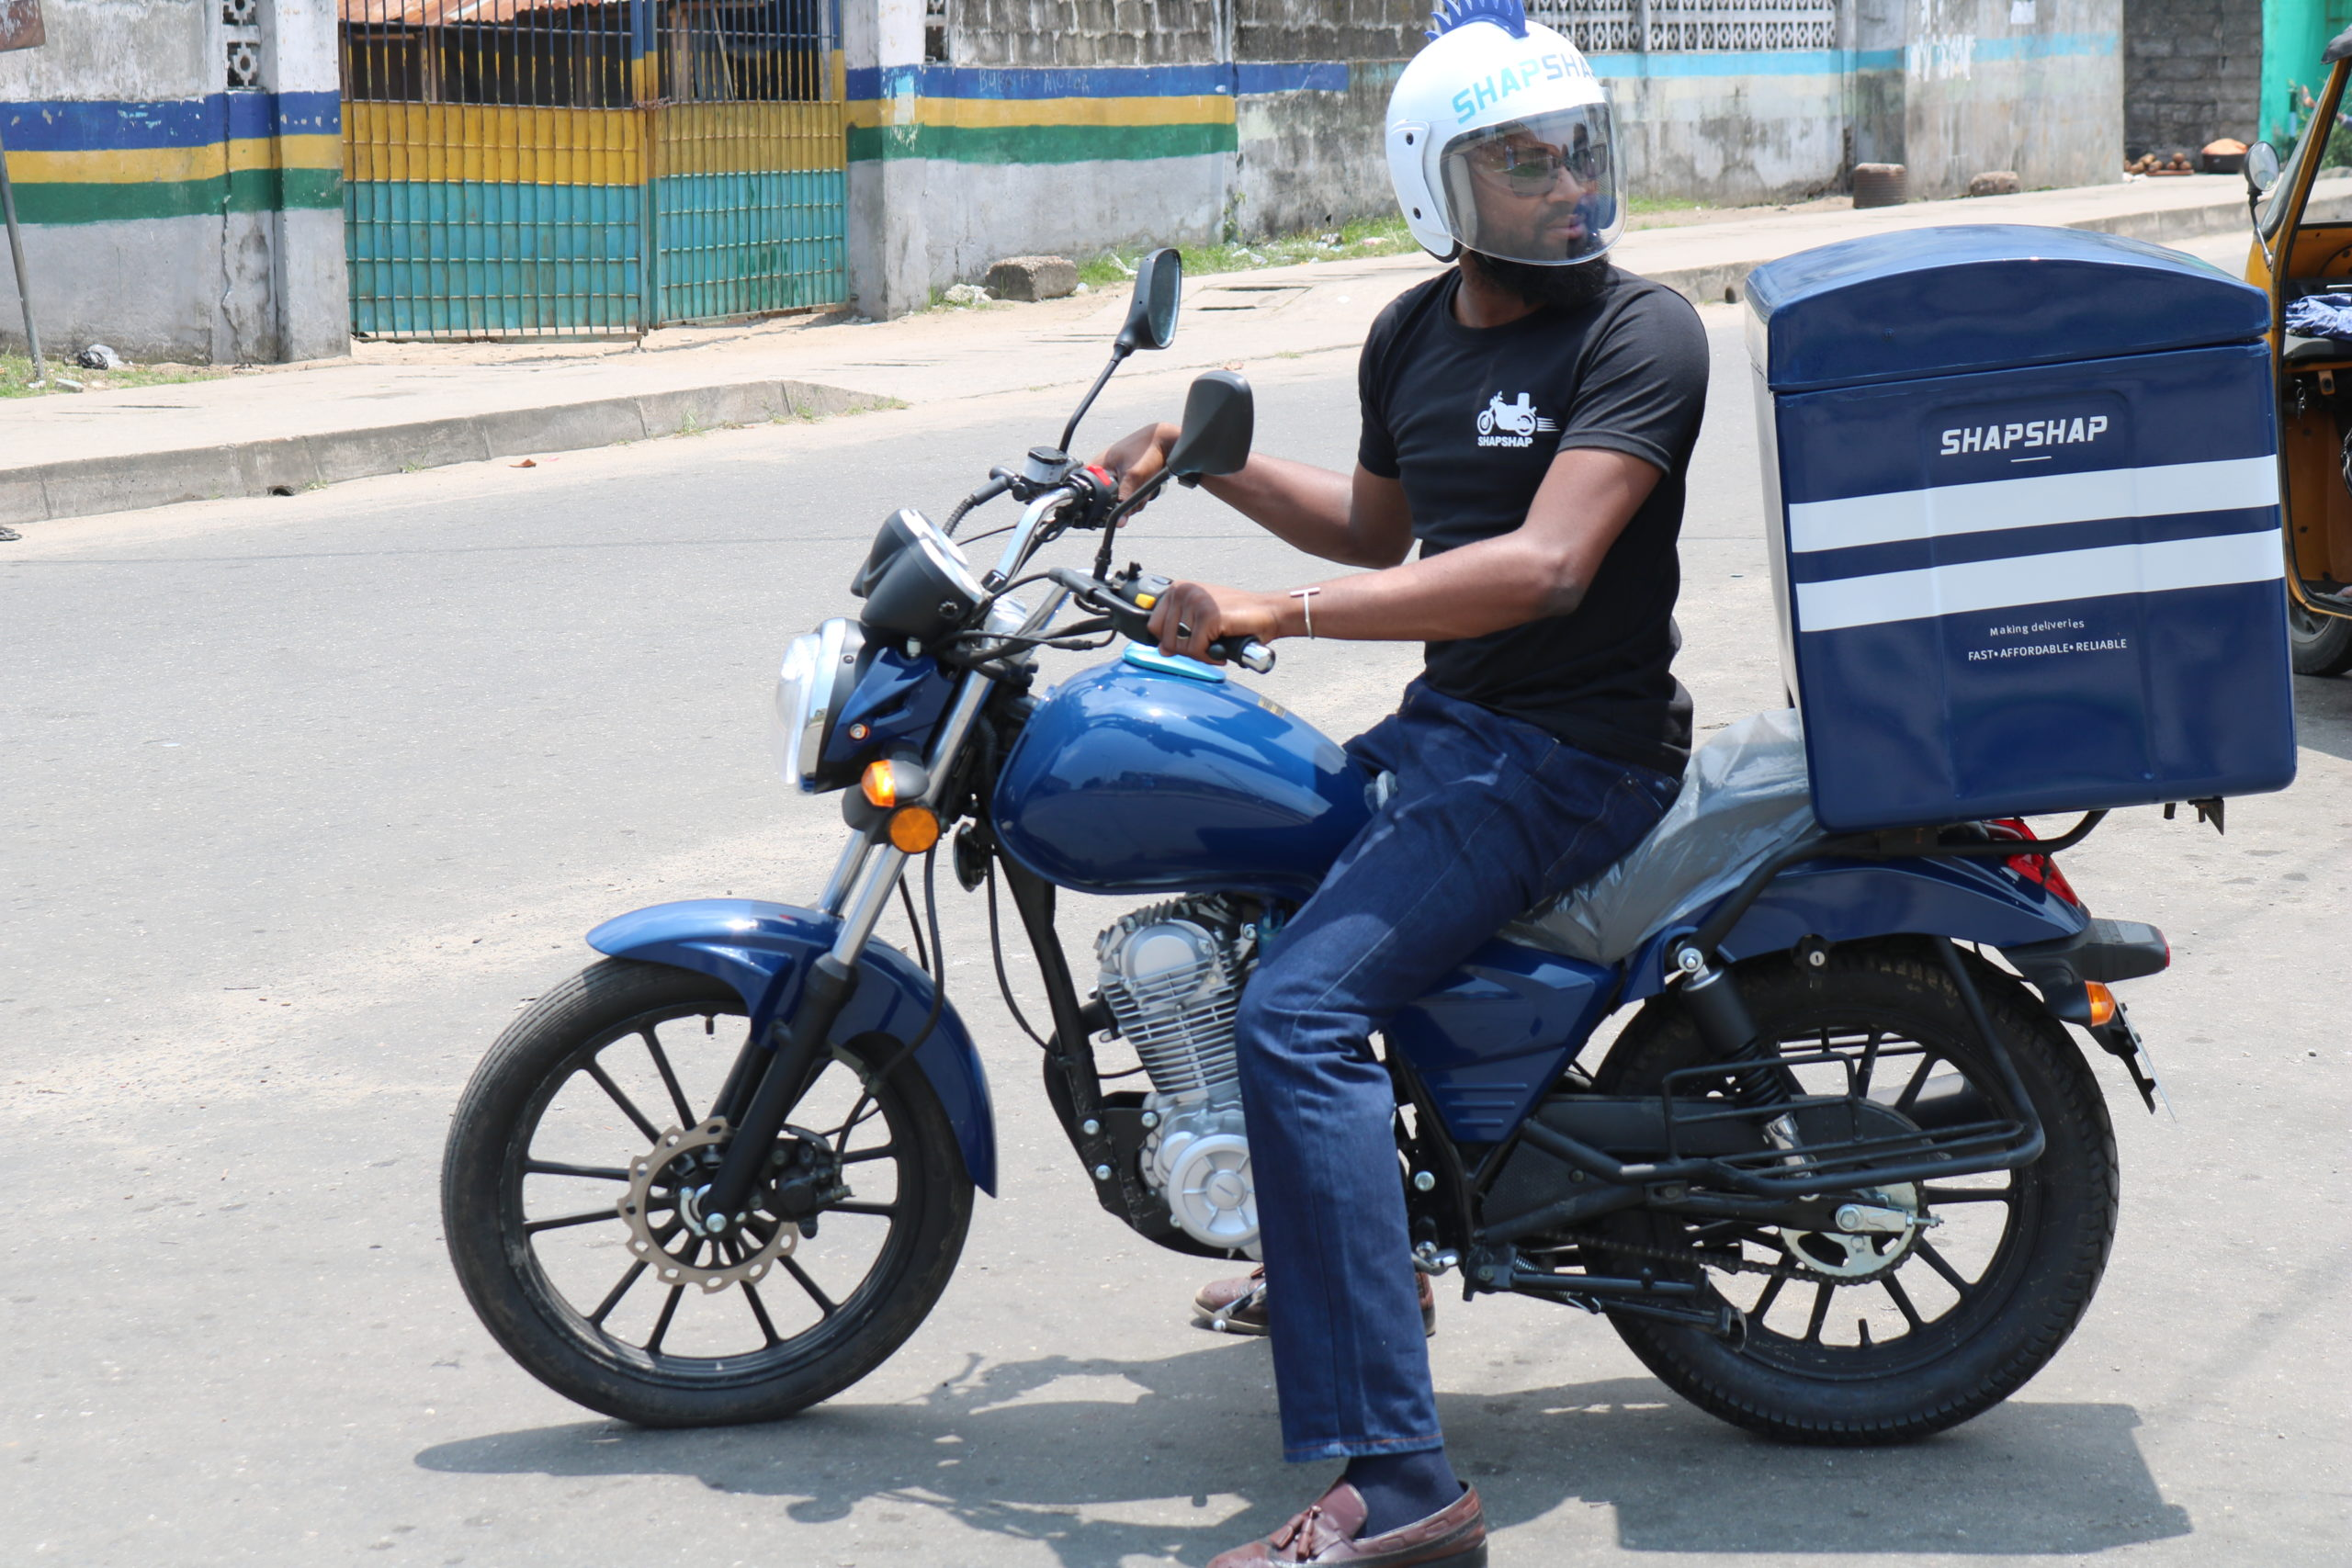 HOW SHAPSHAP IS CHANGING THE FACE OF LAST MILE DELIVERY IN AFRICA, DESPITE THE CHALLENGE OF A PANDEMIC - TechCabal